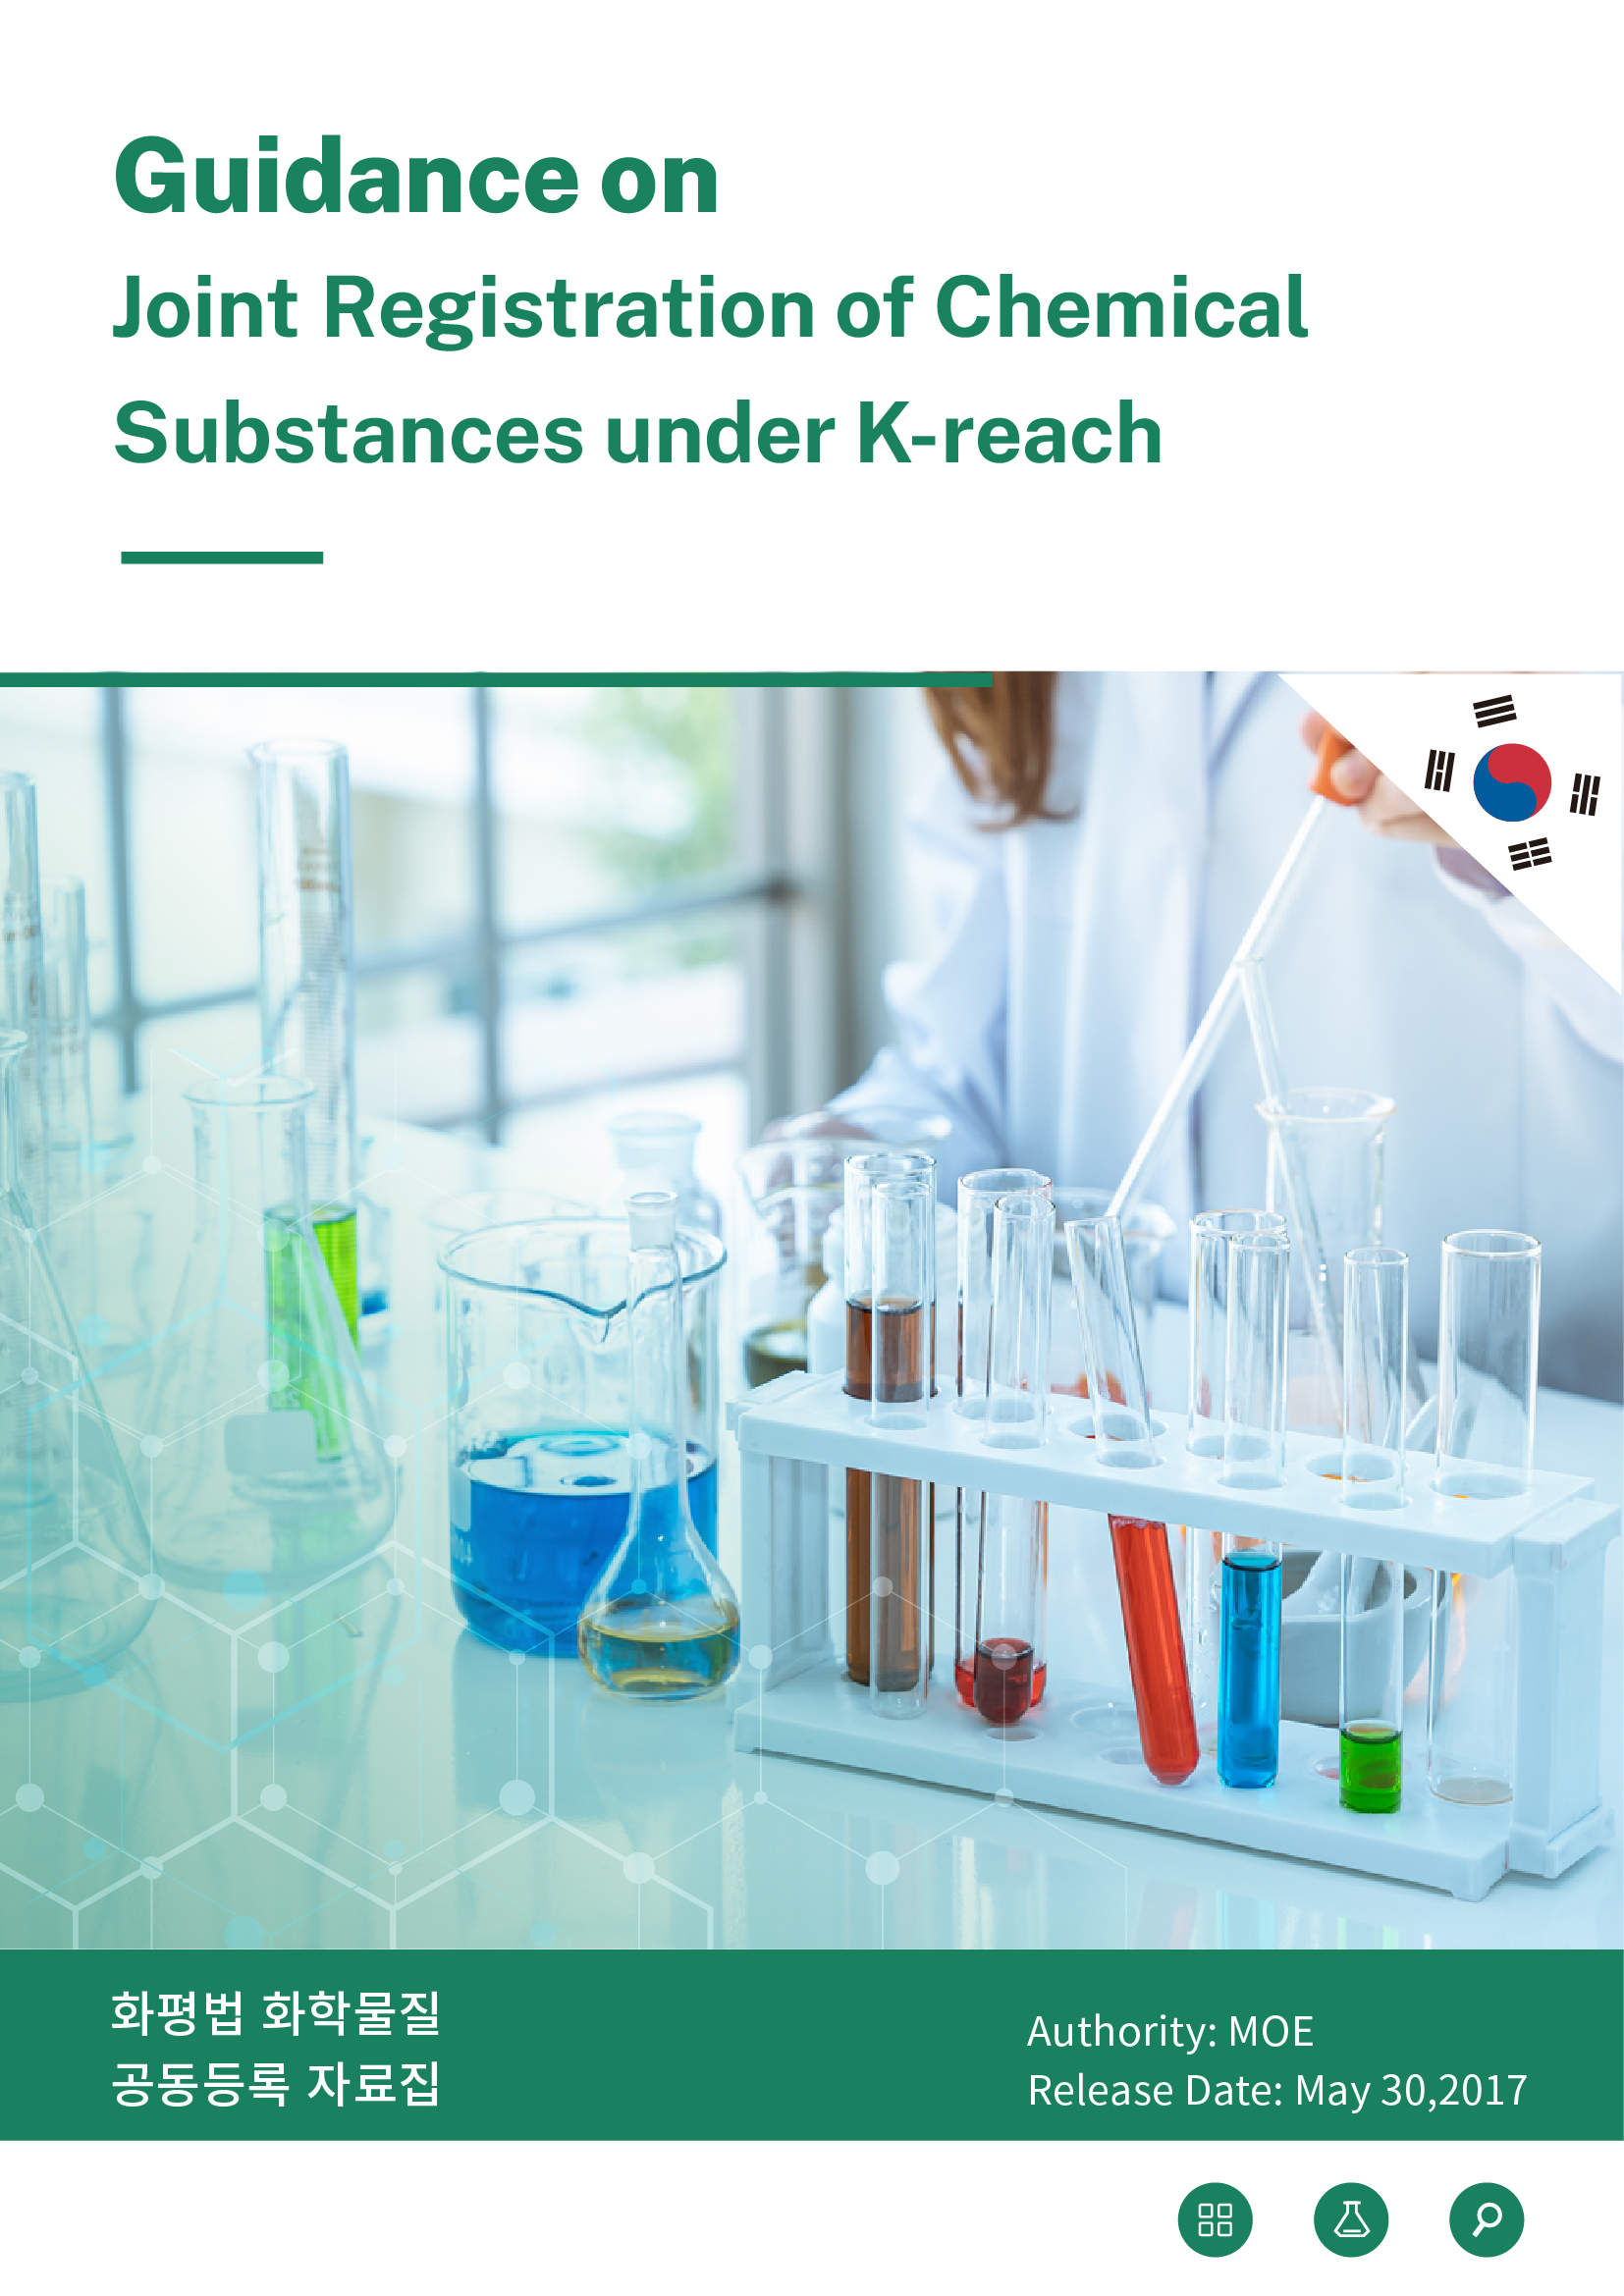 South Korea: Guidance on Joint Registration of Chemical Substances under K-REACH (Registration Materials)